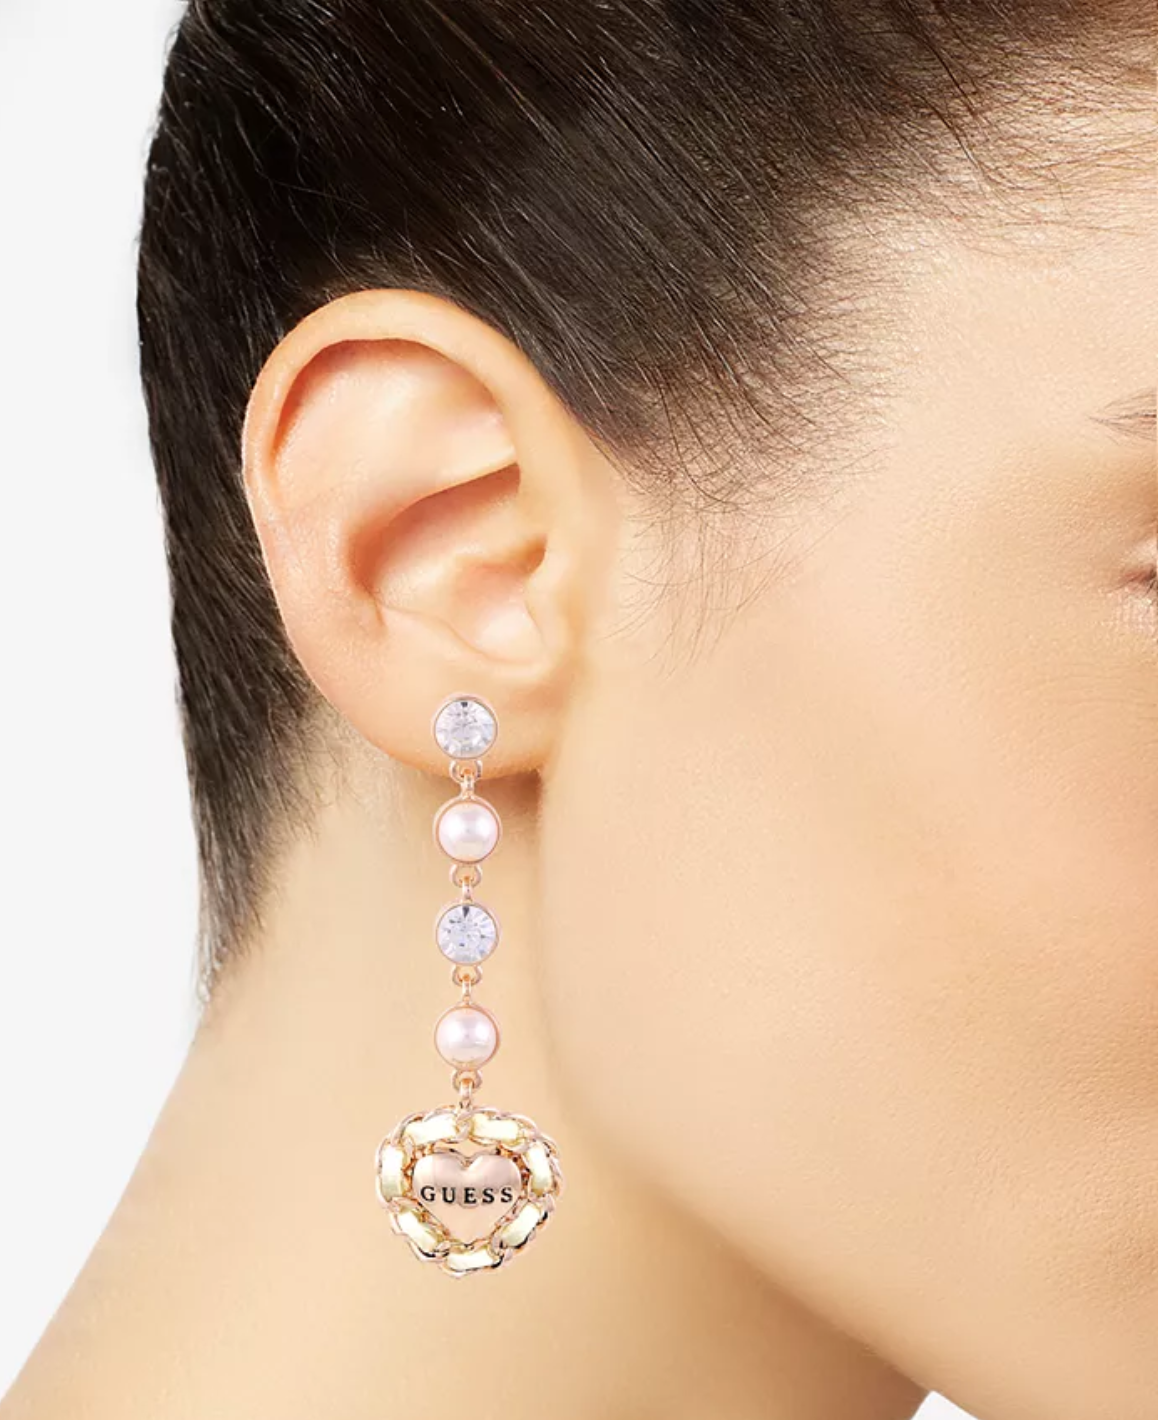 GUESS Rose Gold-Tone Imitation Pearl & Crystal Heart Drop Earrings @Macy's Buy 1 30% off, Buy 2 50% off